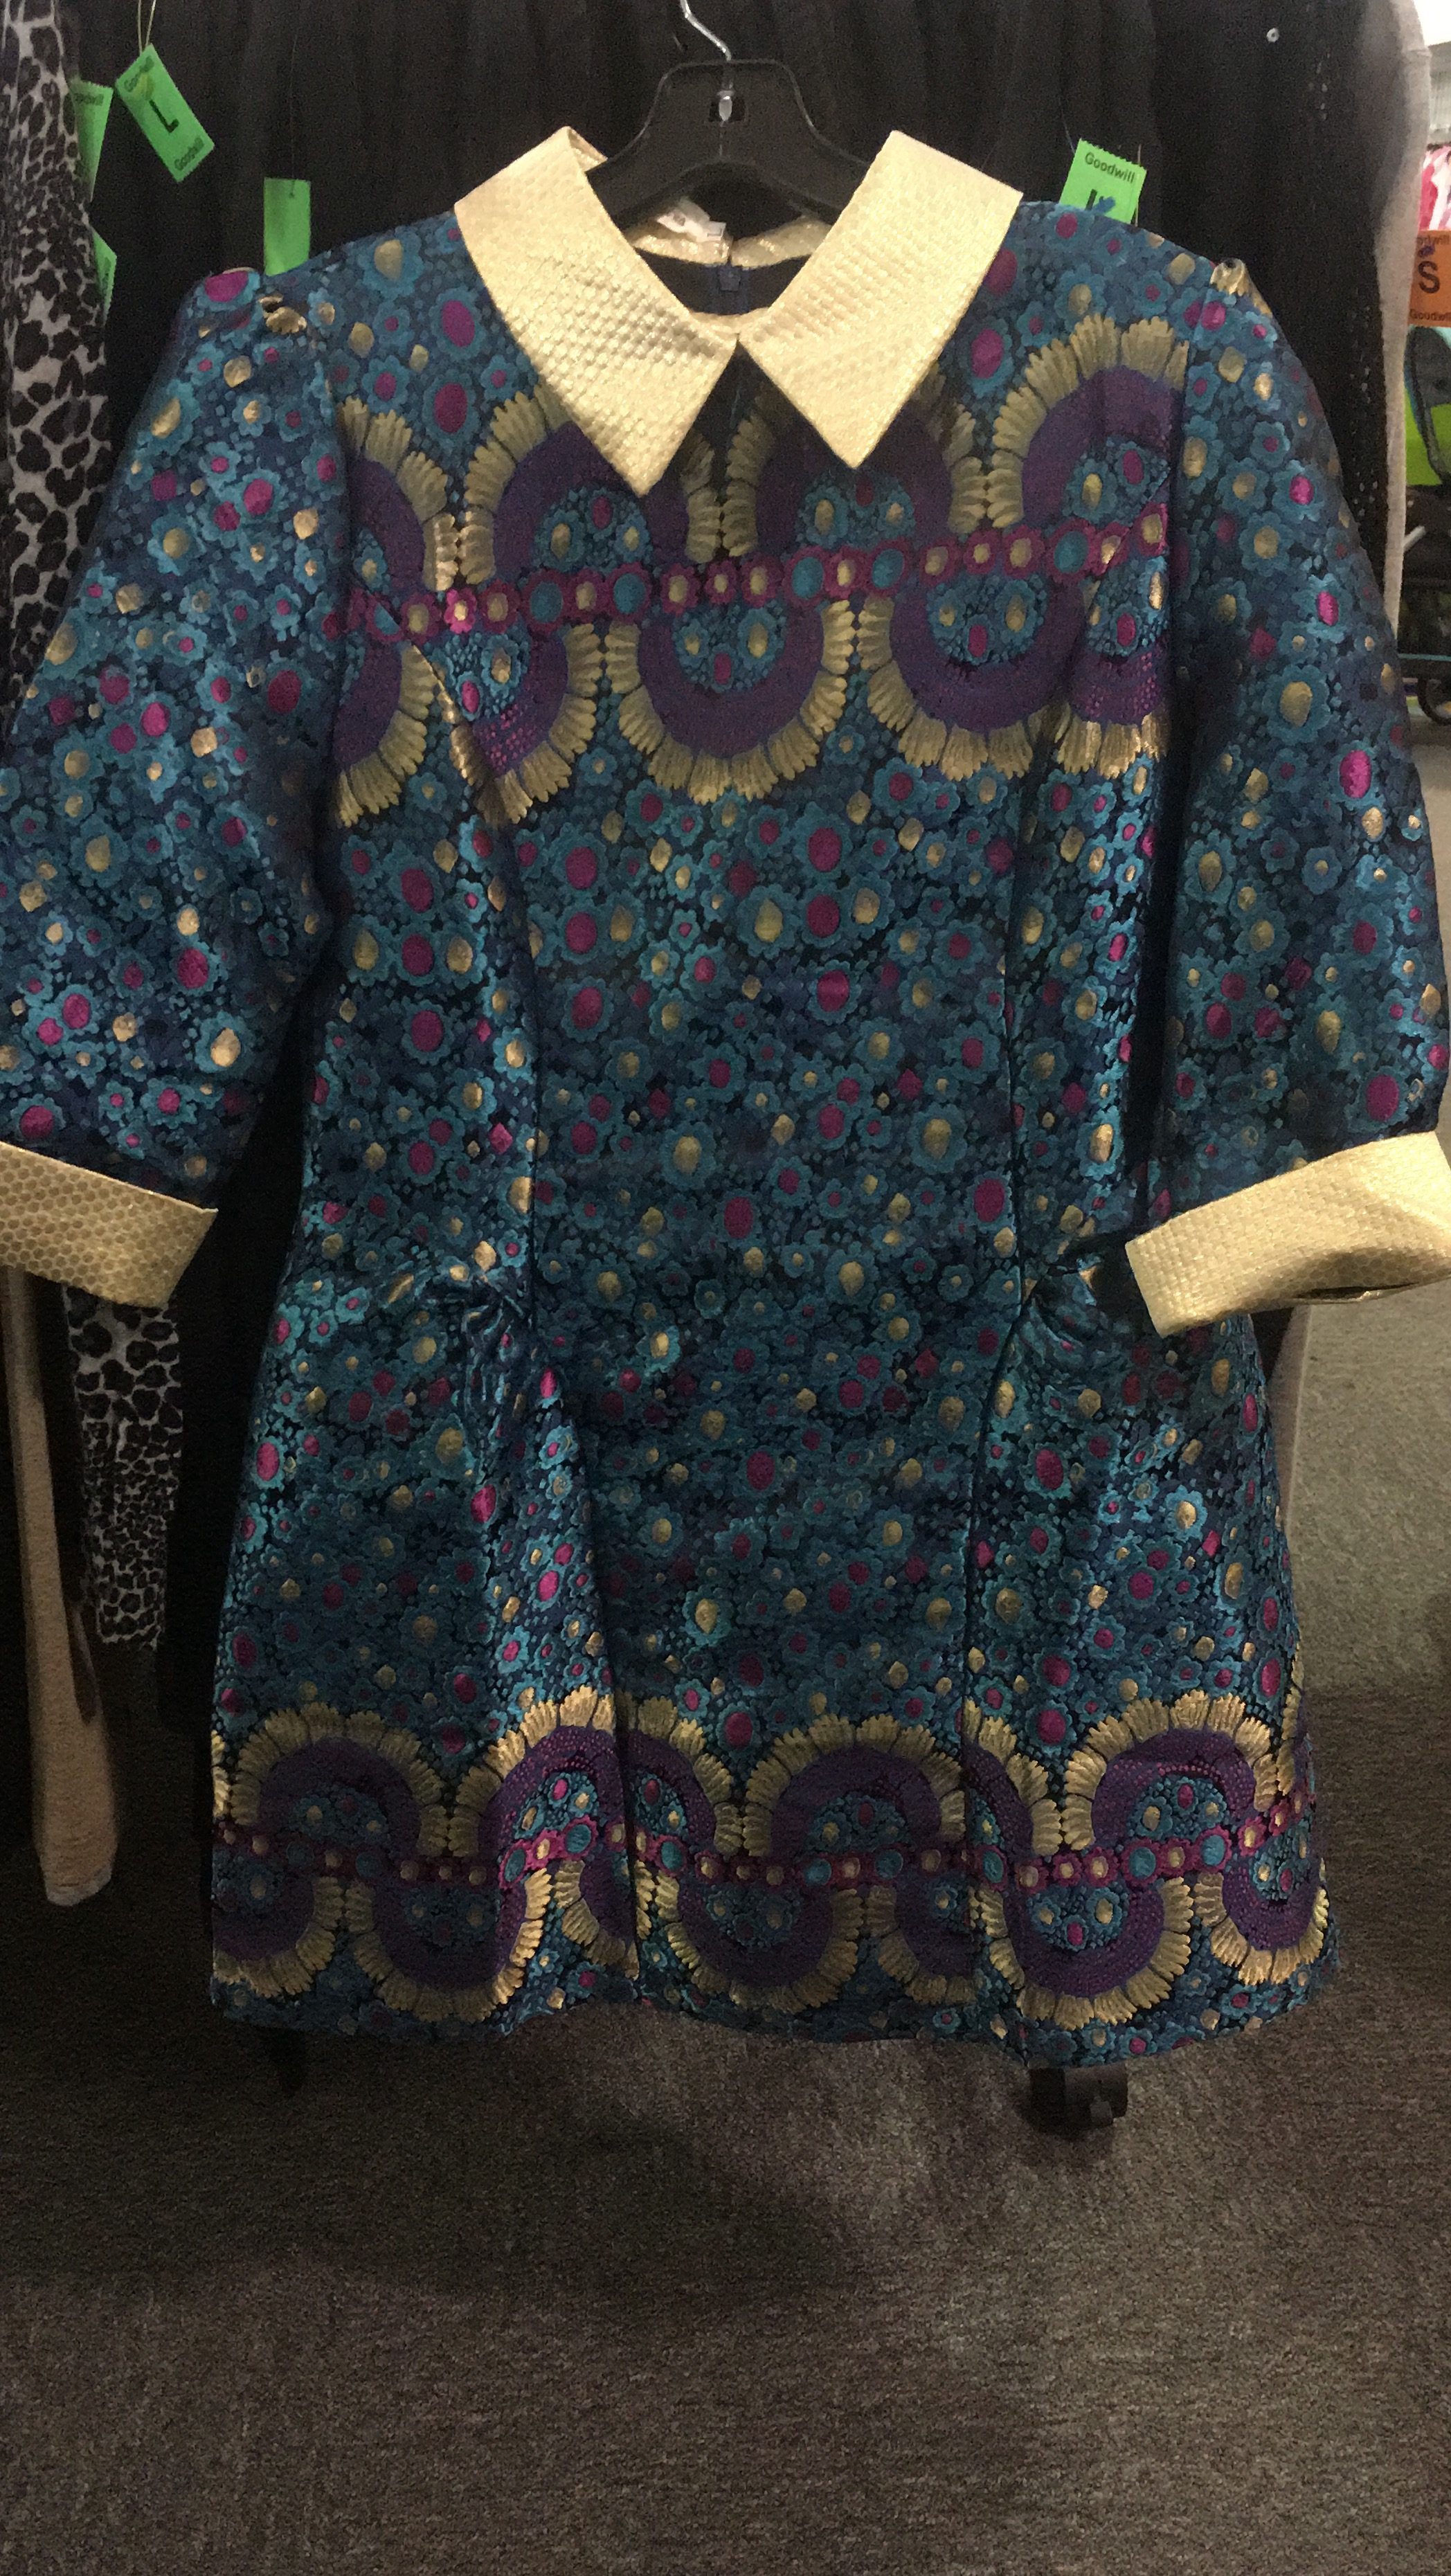 vintage look dress found at the Bowie, MD Goodwill